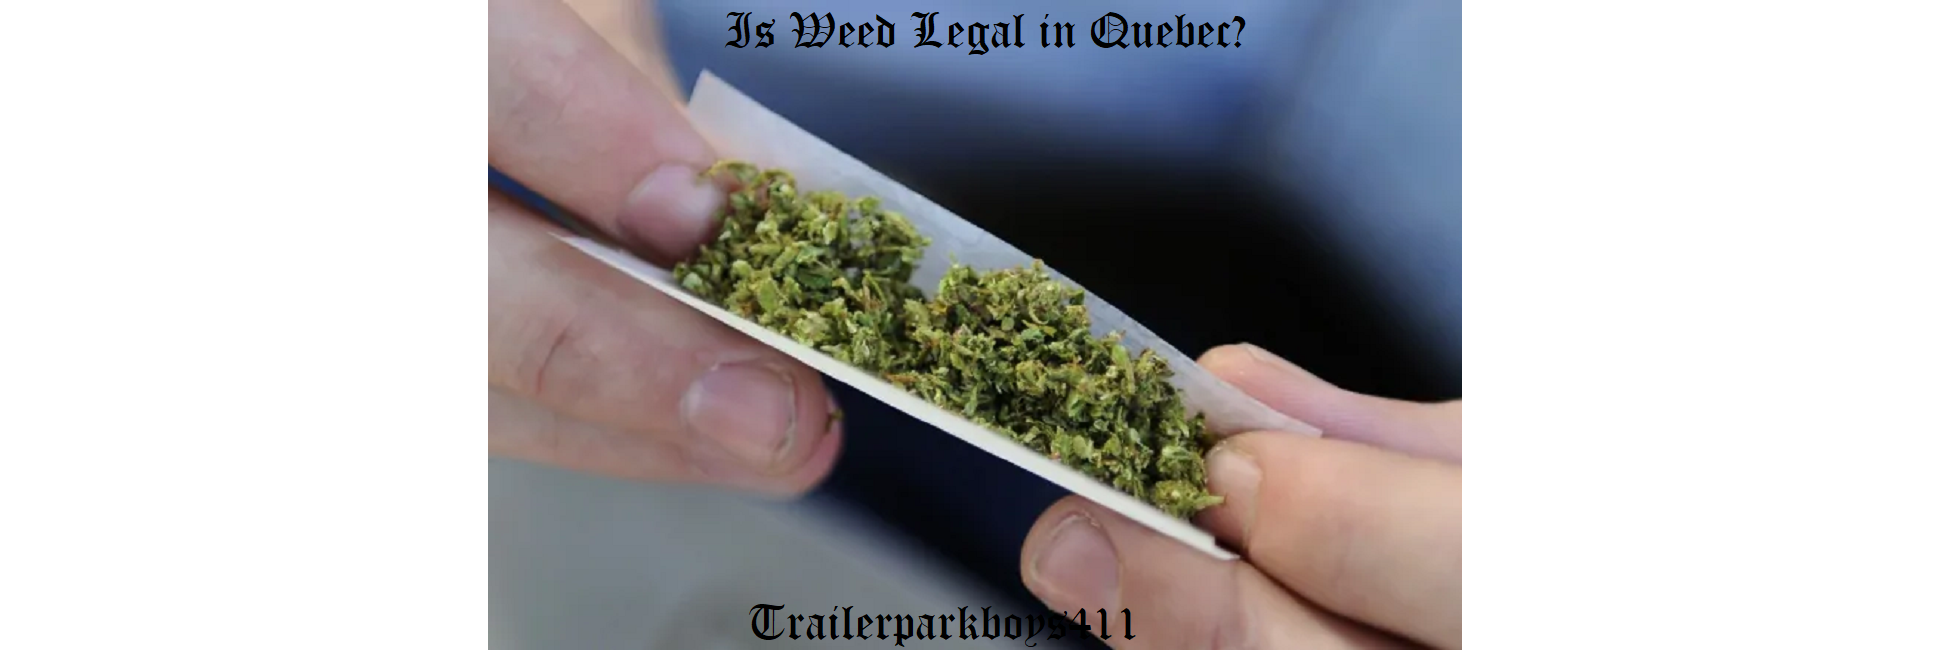 Is Weed Legal in Quebec